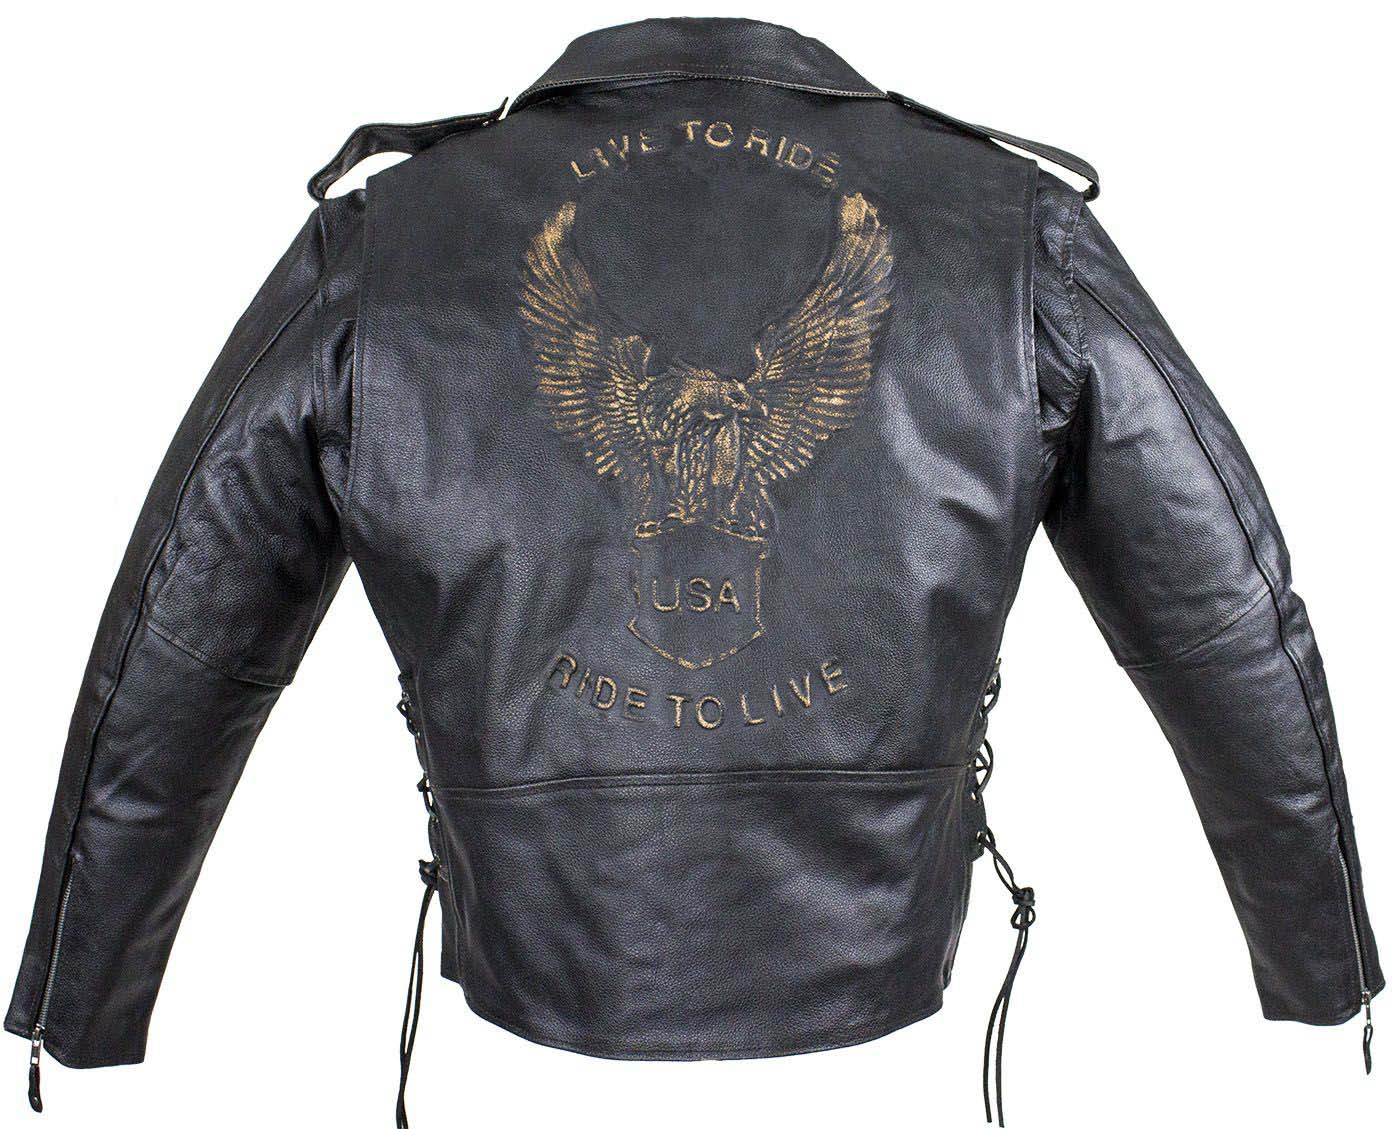 Classic Style Motorcycle Jacket with Side Laces and Live To Ride - SKU MJ703-SS-DL